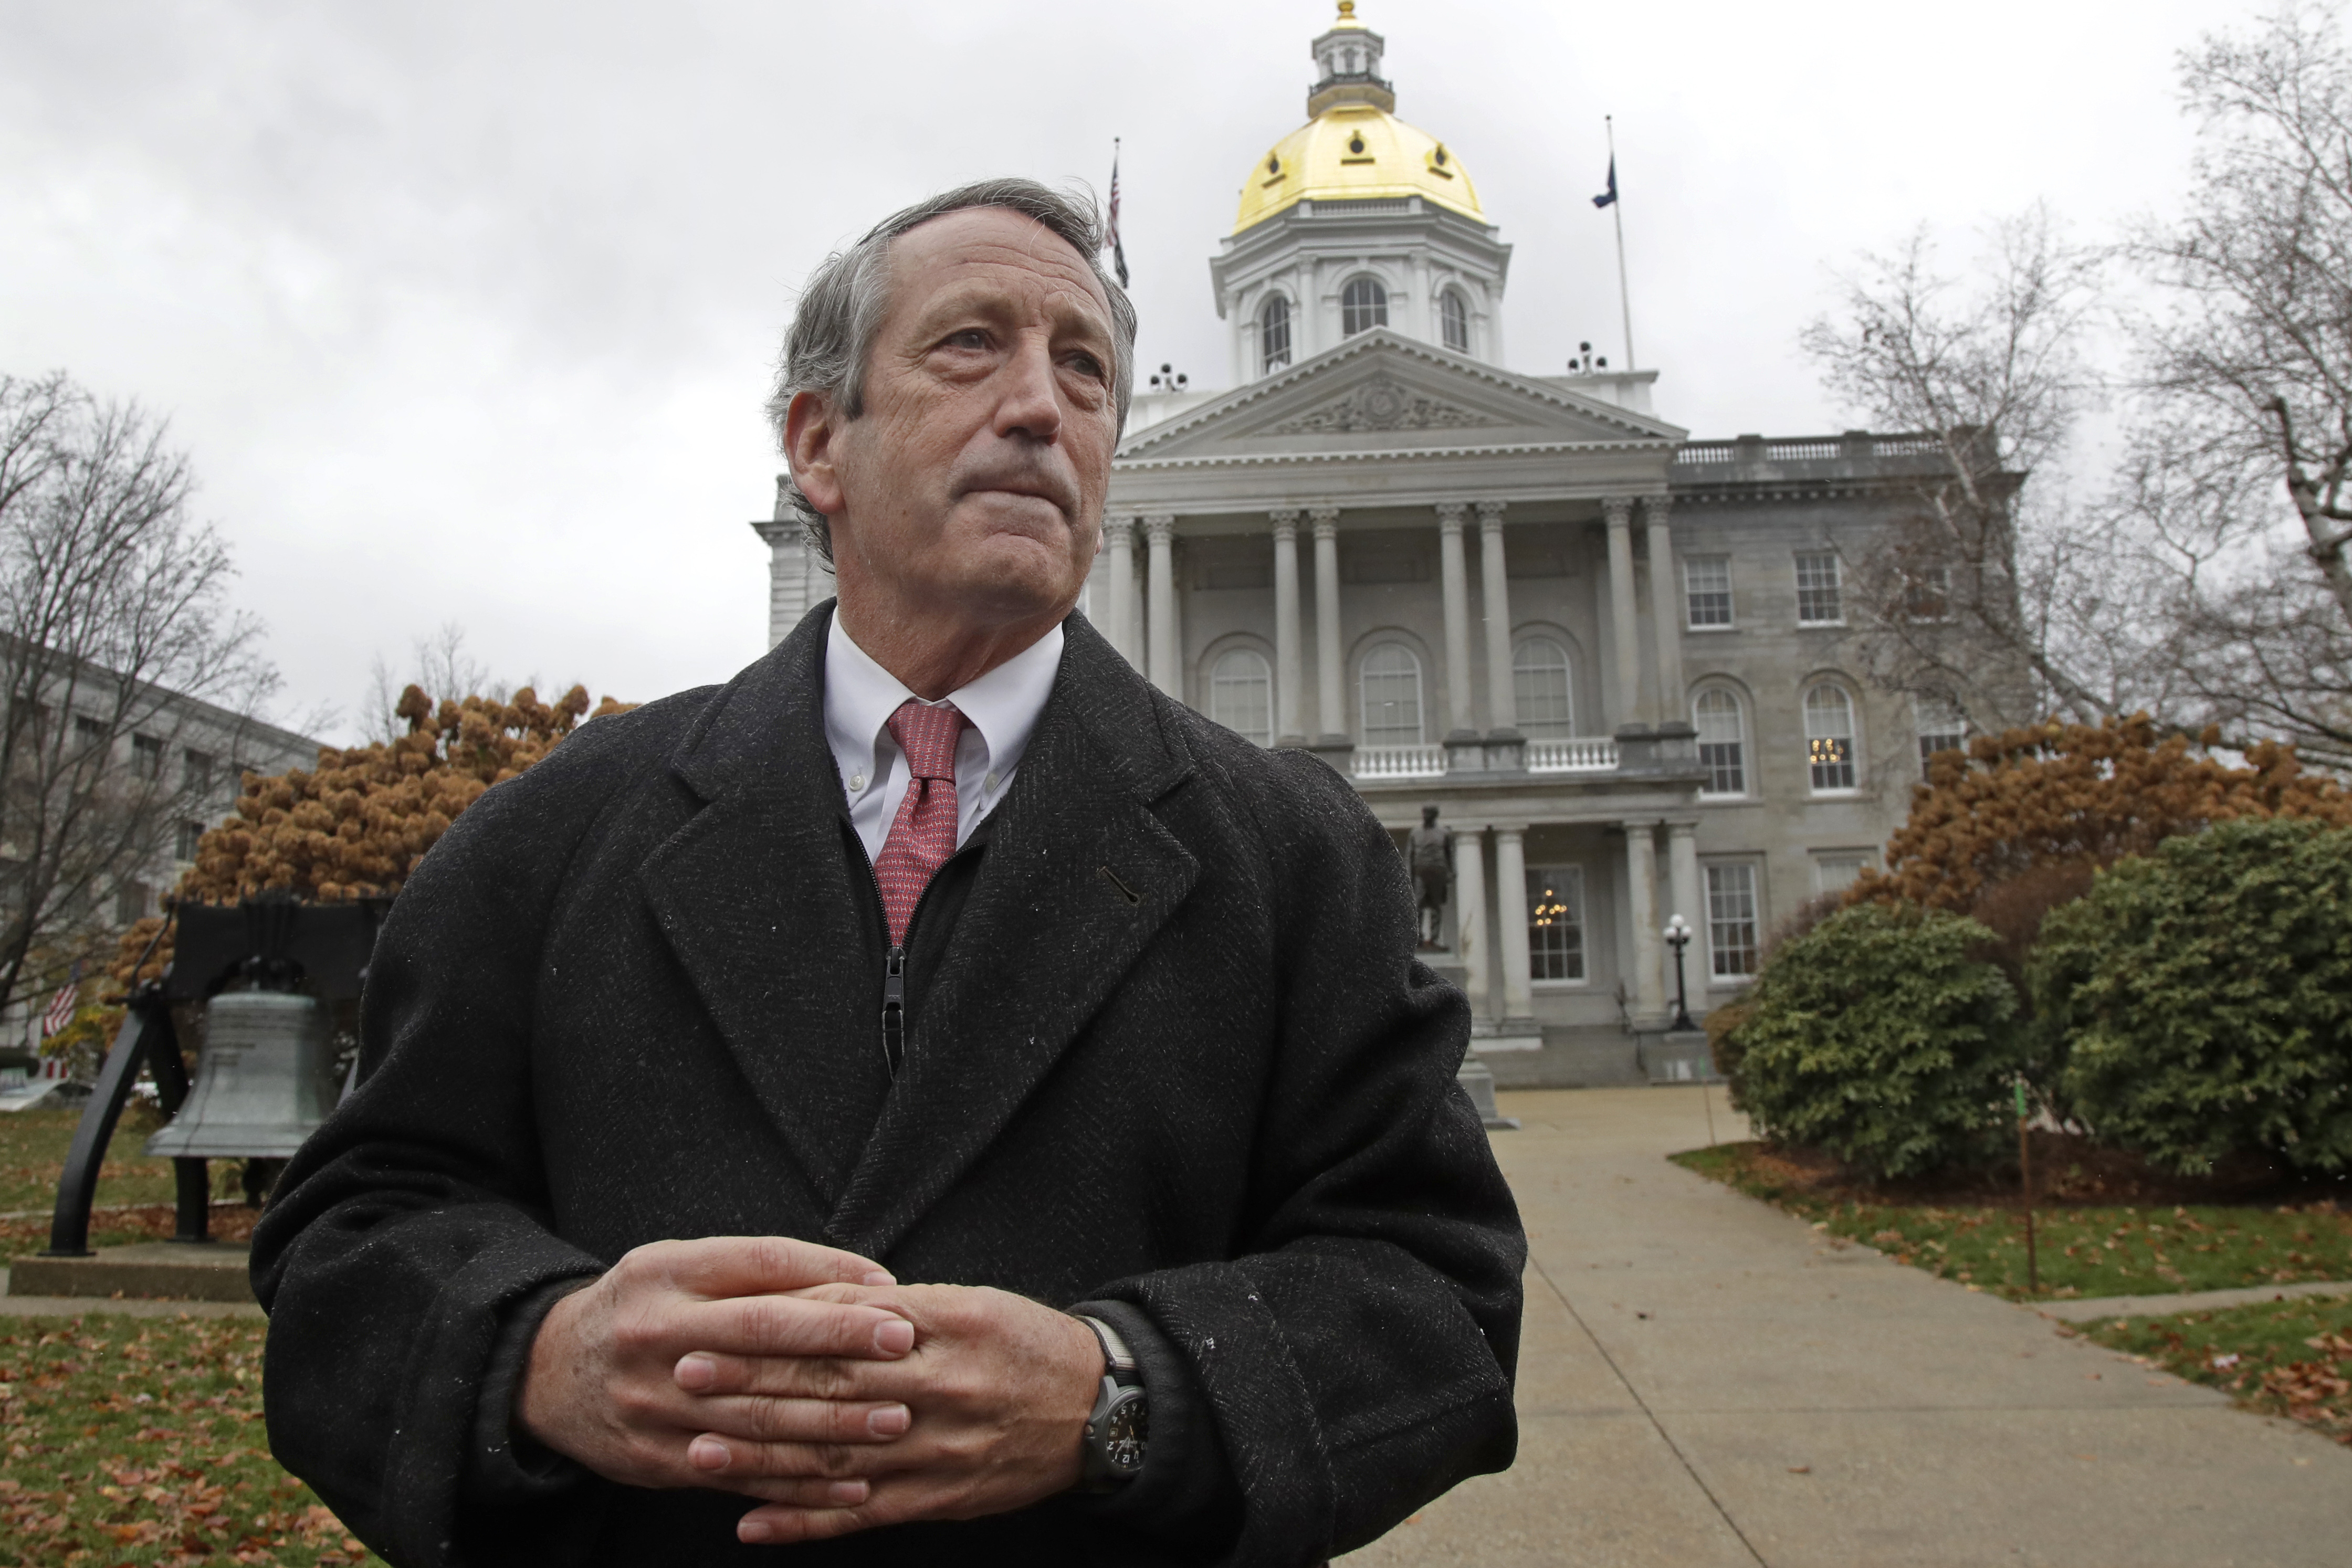 Republican presidential candidate former South Carolina Gov. Mark Sanford speaks during a news conference in front of the Statehouse, Tuesday, Nov. 12, 2019, in Concord, N.H., where he announced he is ending his long shot 2020 presidential bid.